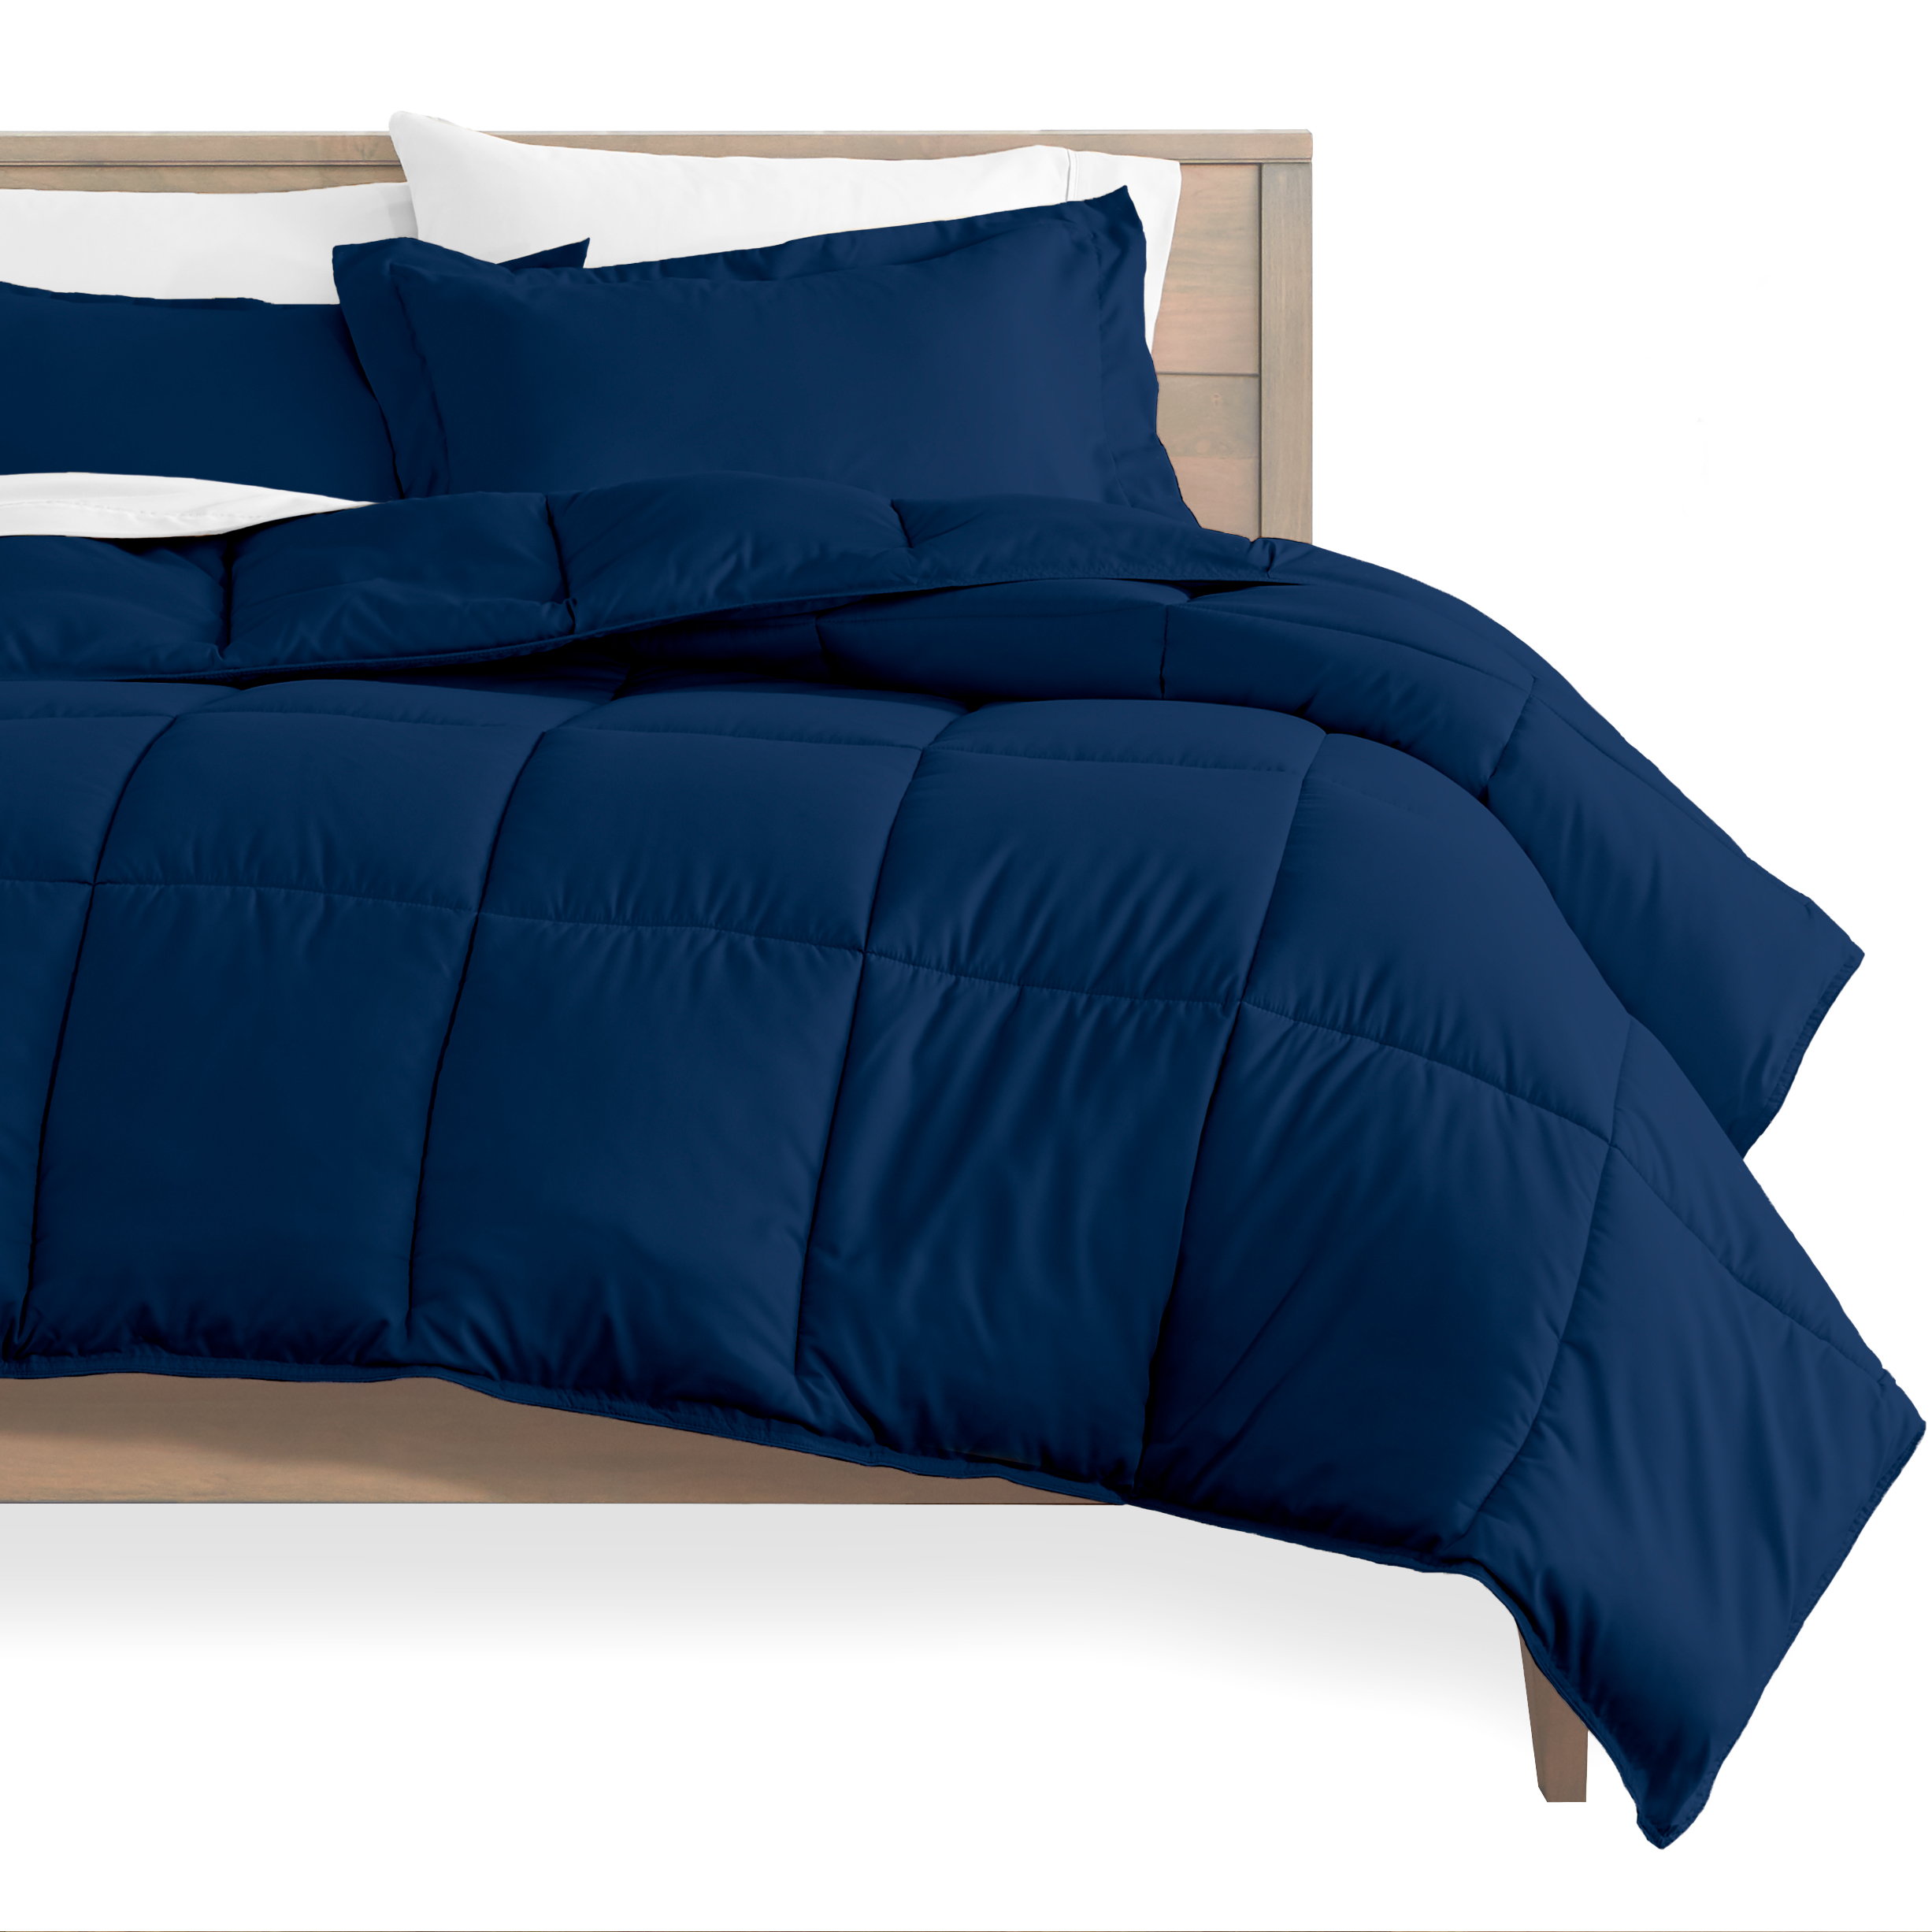 Bare Home Ultra Soft Goose Down Alternative Comforter Set Twin Twin Xl Dark Blue Walmart Com Walmart Com